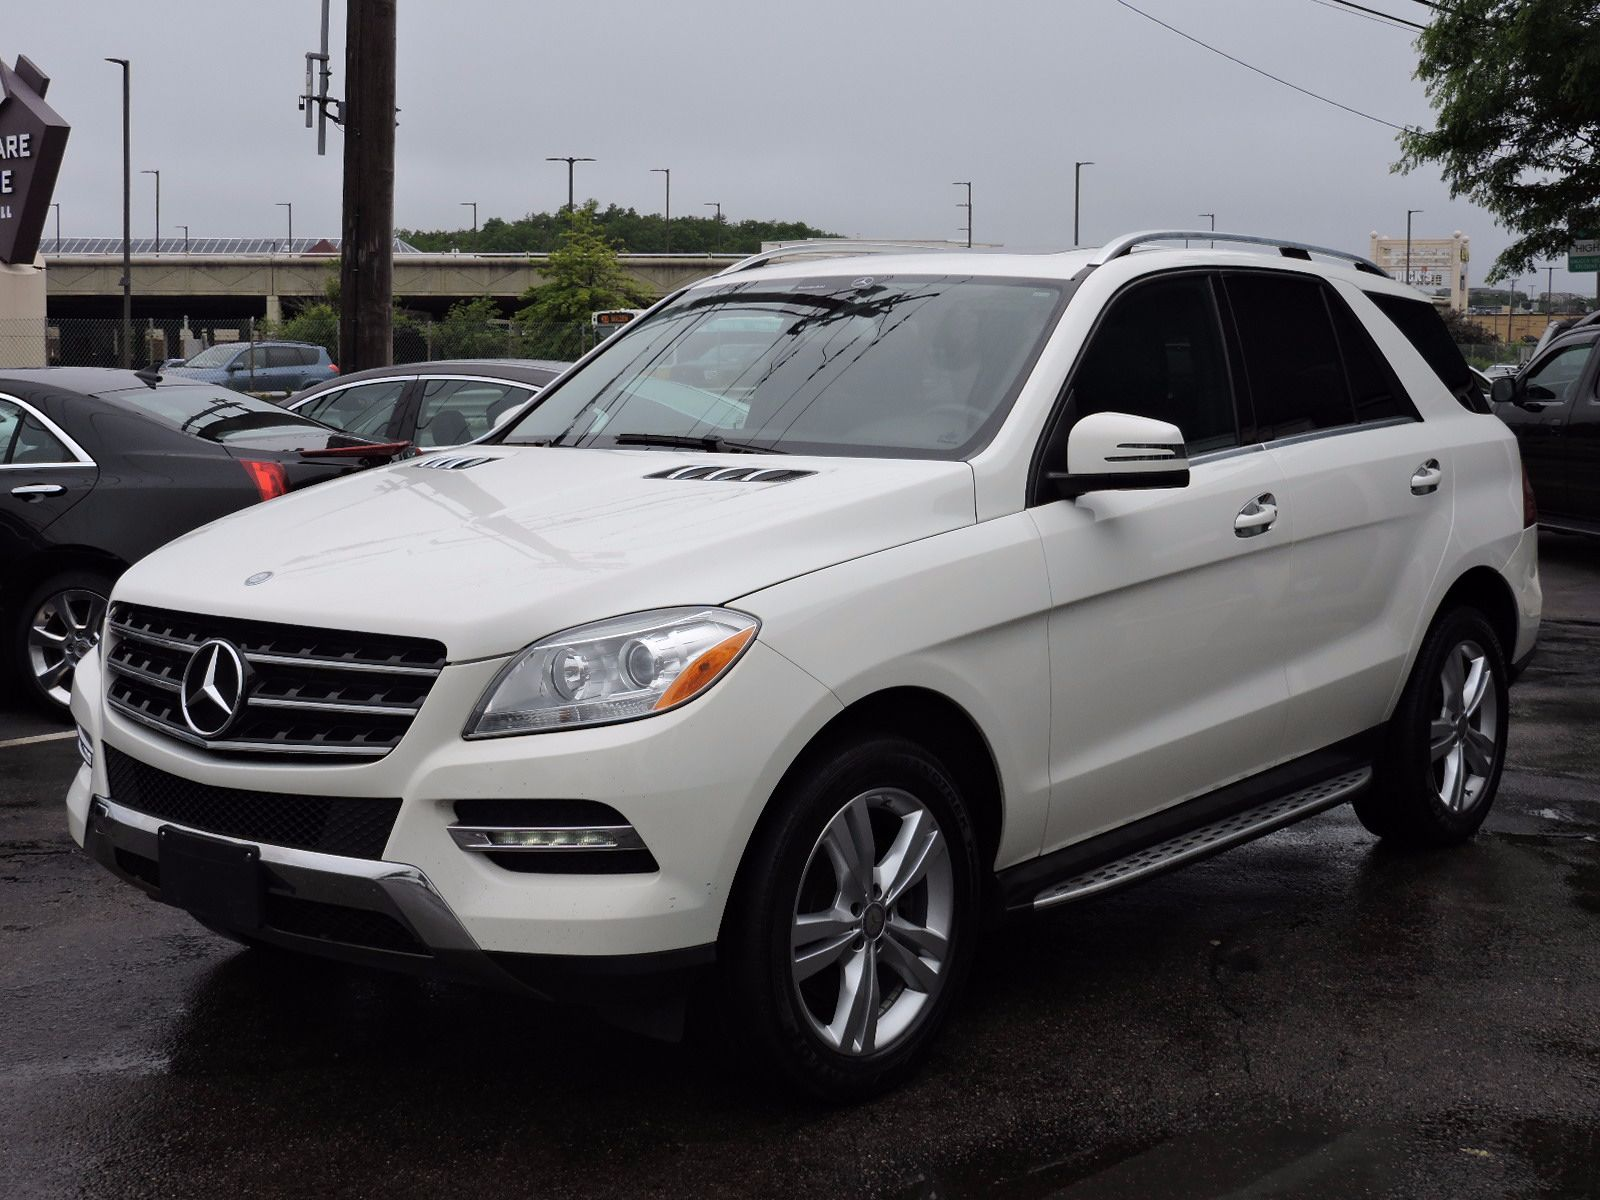 Used 2013 mercedes benz ml 350 ls at auto house usa saugus for Mercedes benz 350 ml